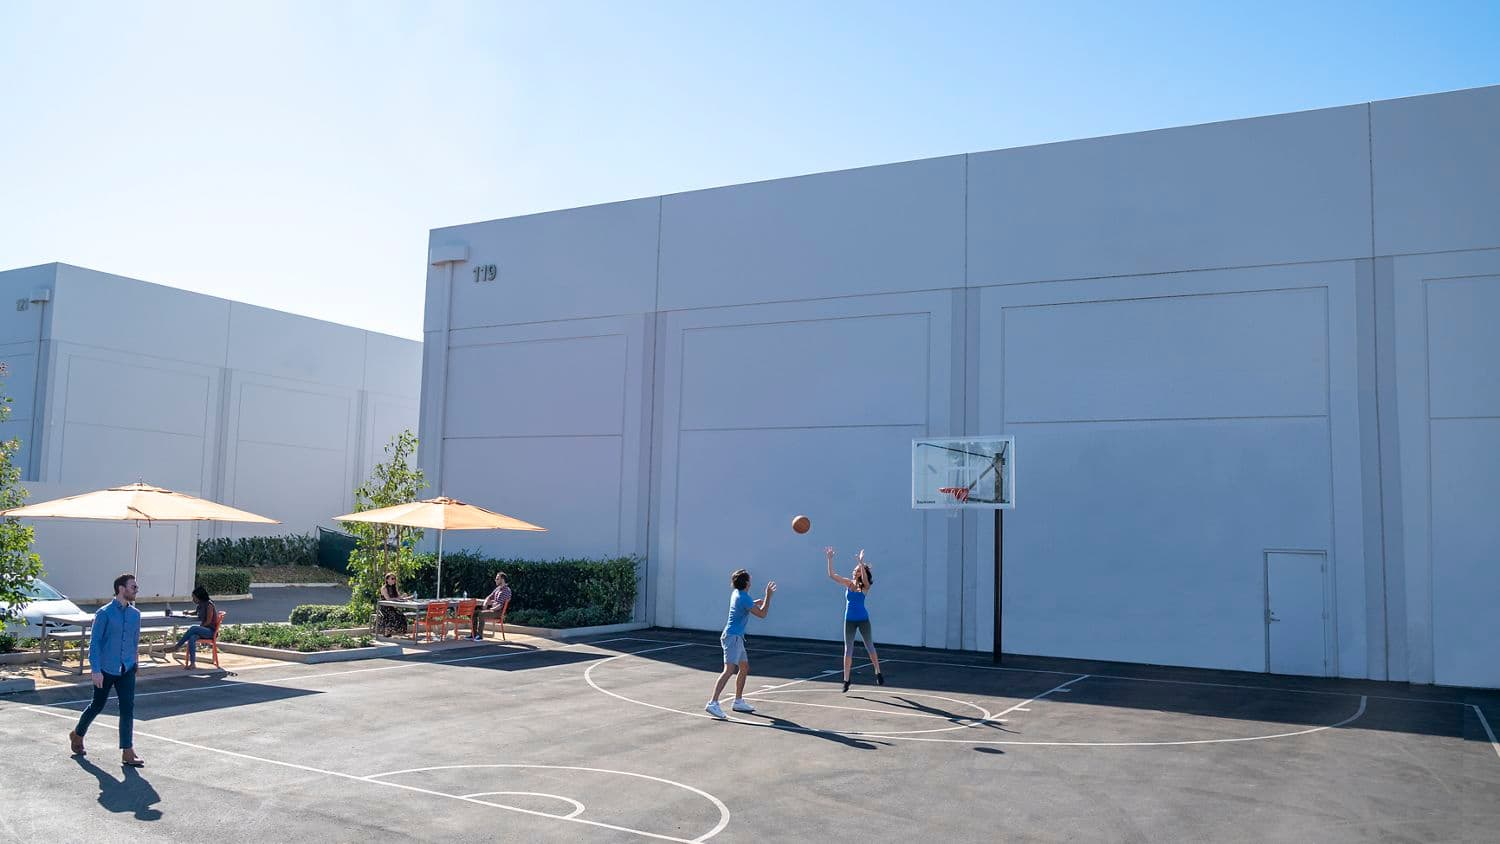 Lifestyle photography of the basketball court located at Laguna Canyon in Irvine, CA